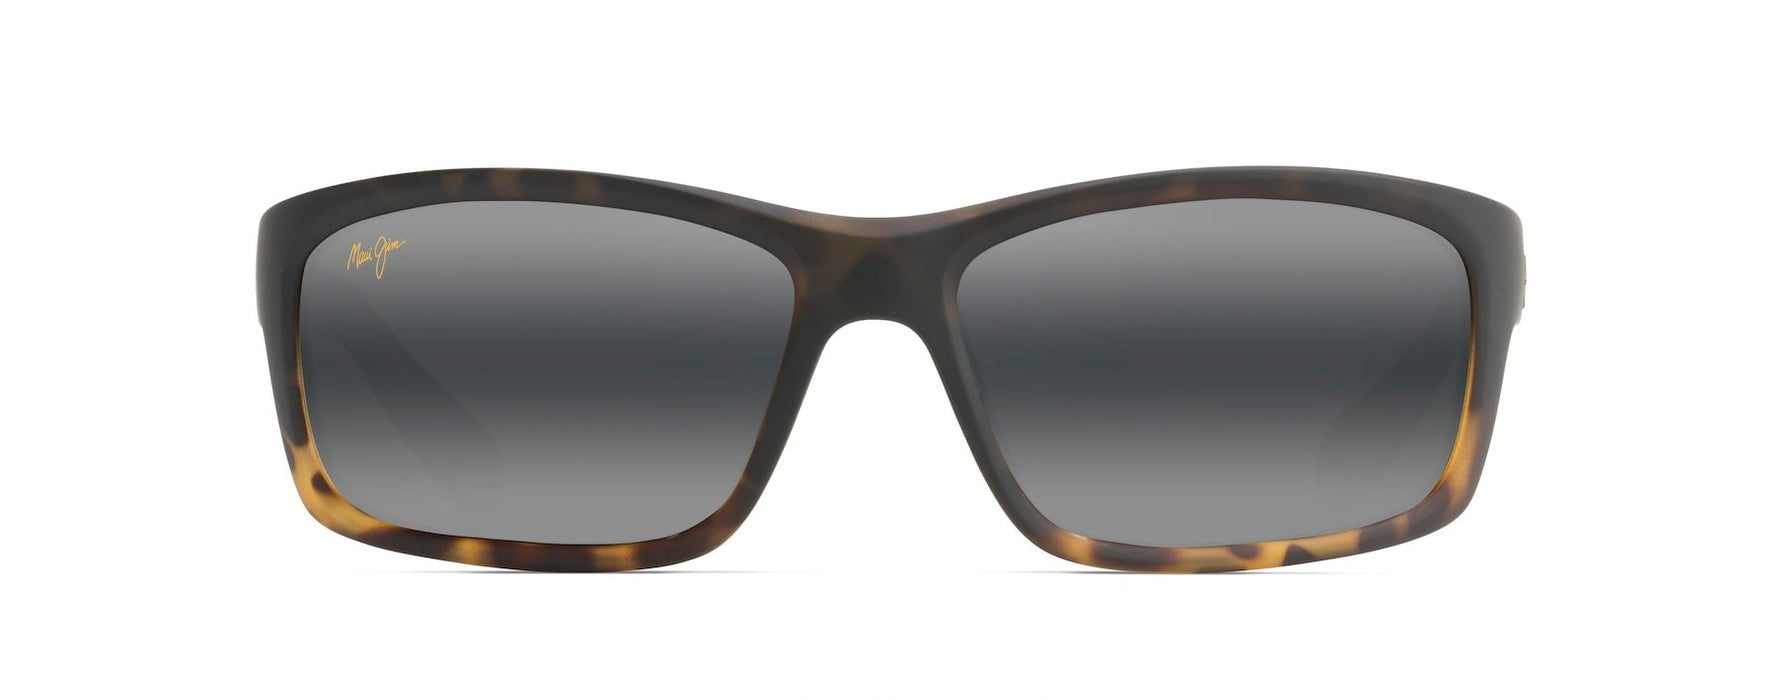 MyMaui Kanaio Coast MM766-018 Sunglasses